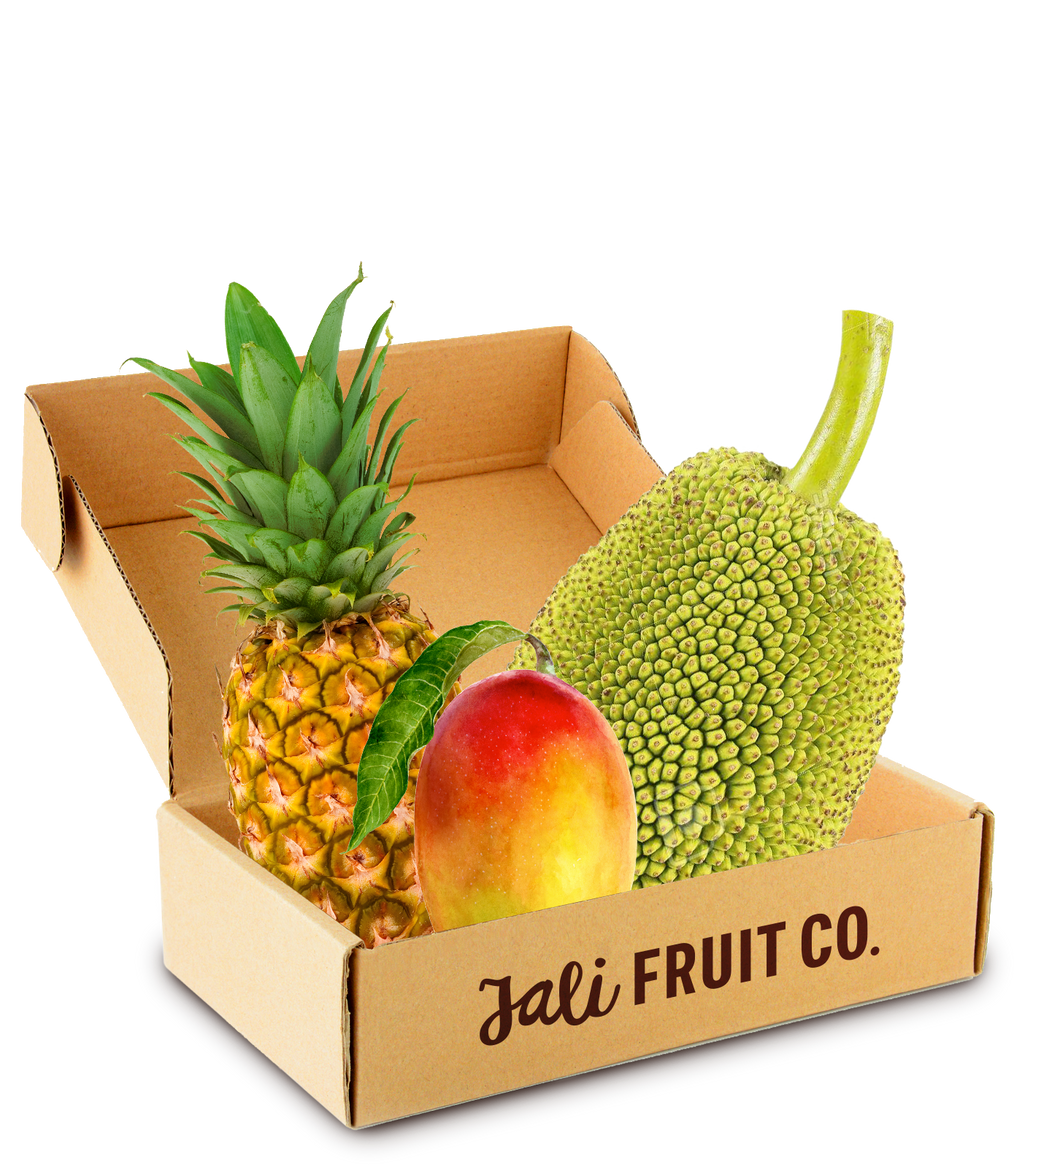 The Jali Fruit Co. - Variety Pack The Jali Fruit Co.